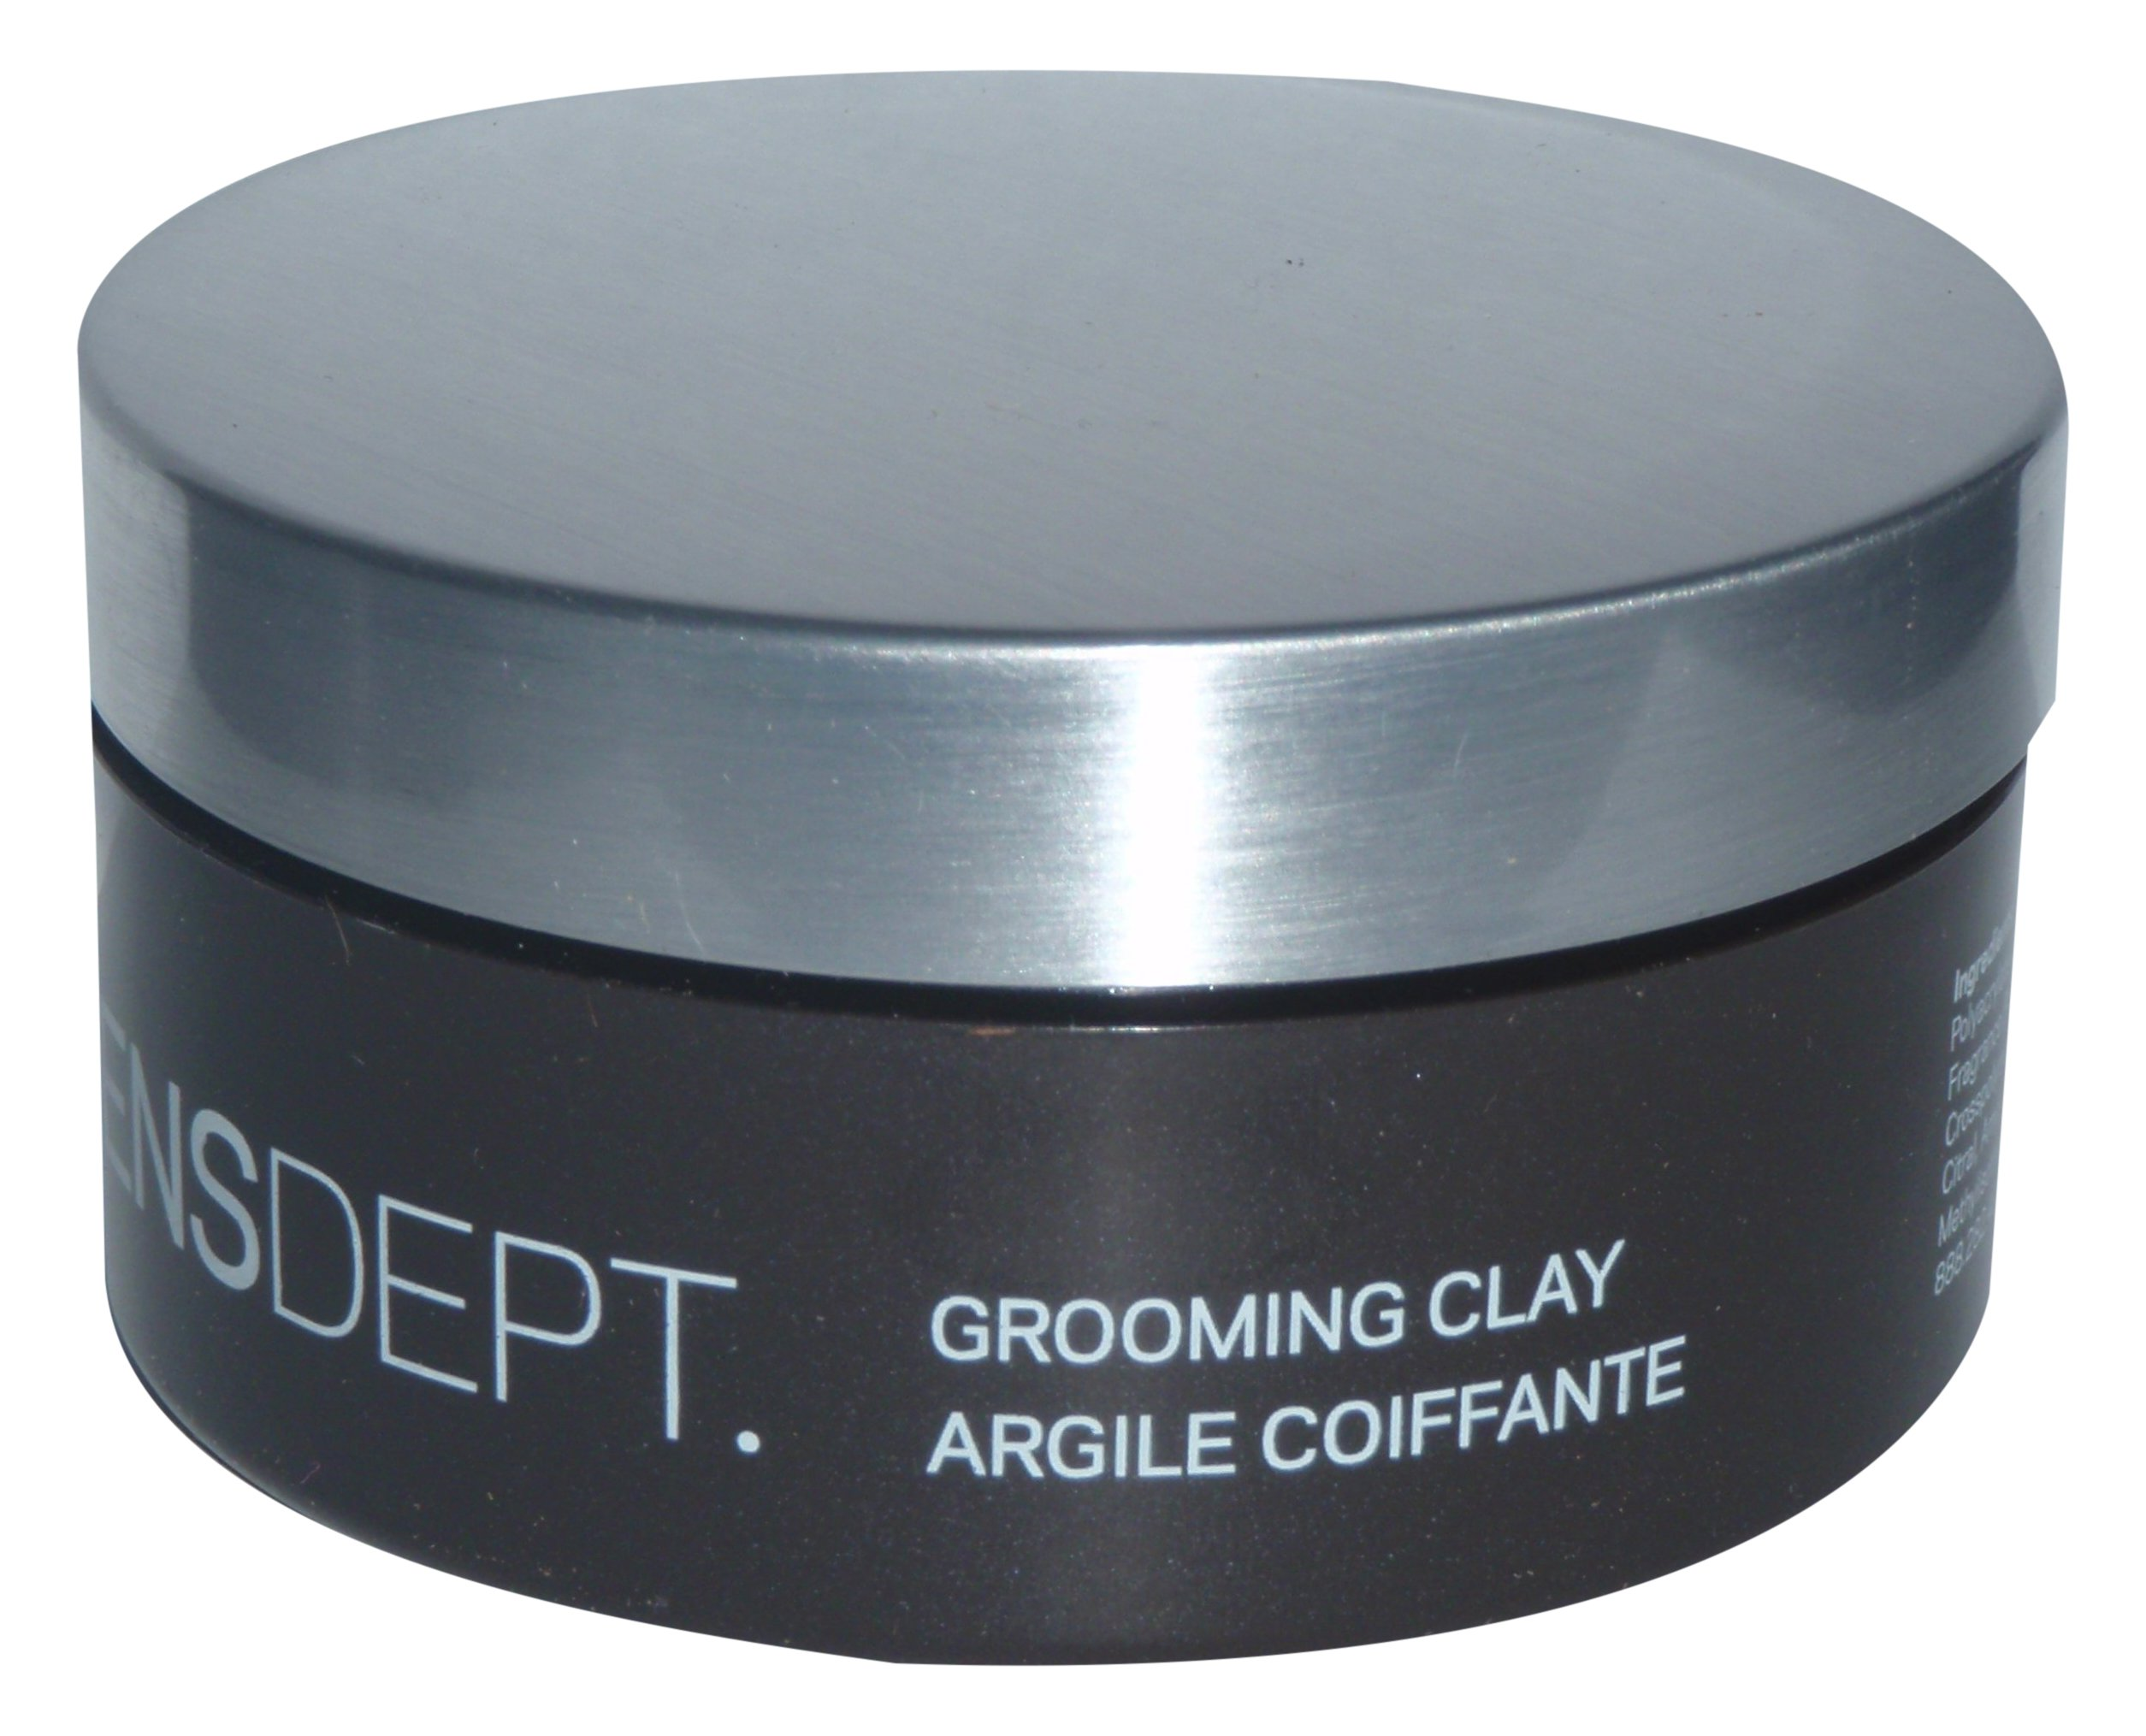 MENSDEPT Grooming Clay Strong Hold, Matte Finish, 2.5 oz. by MENSDEPT